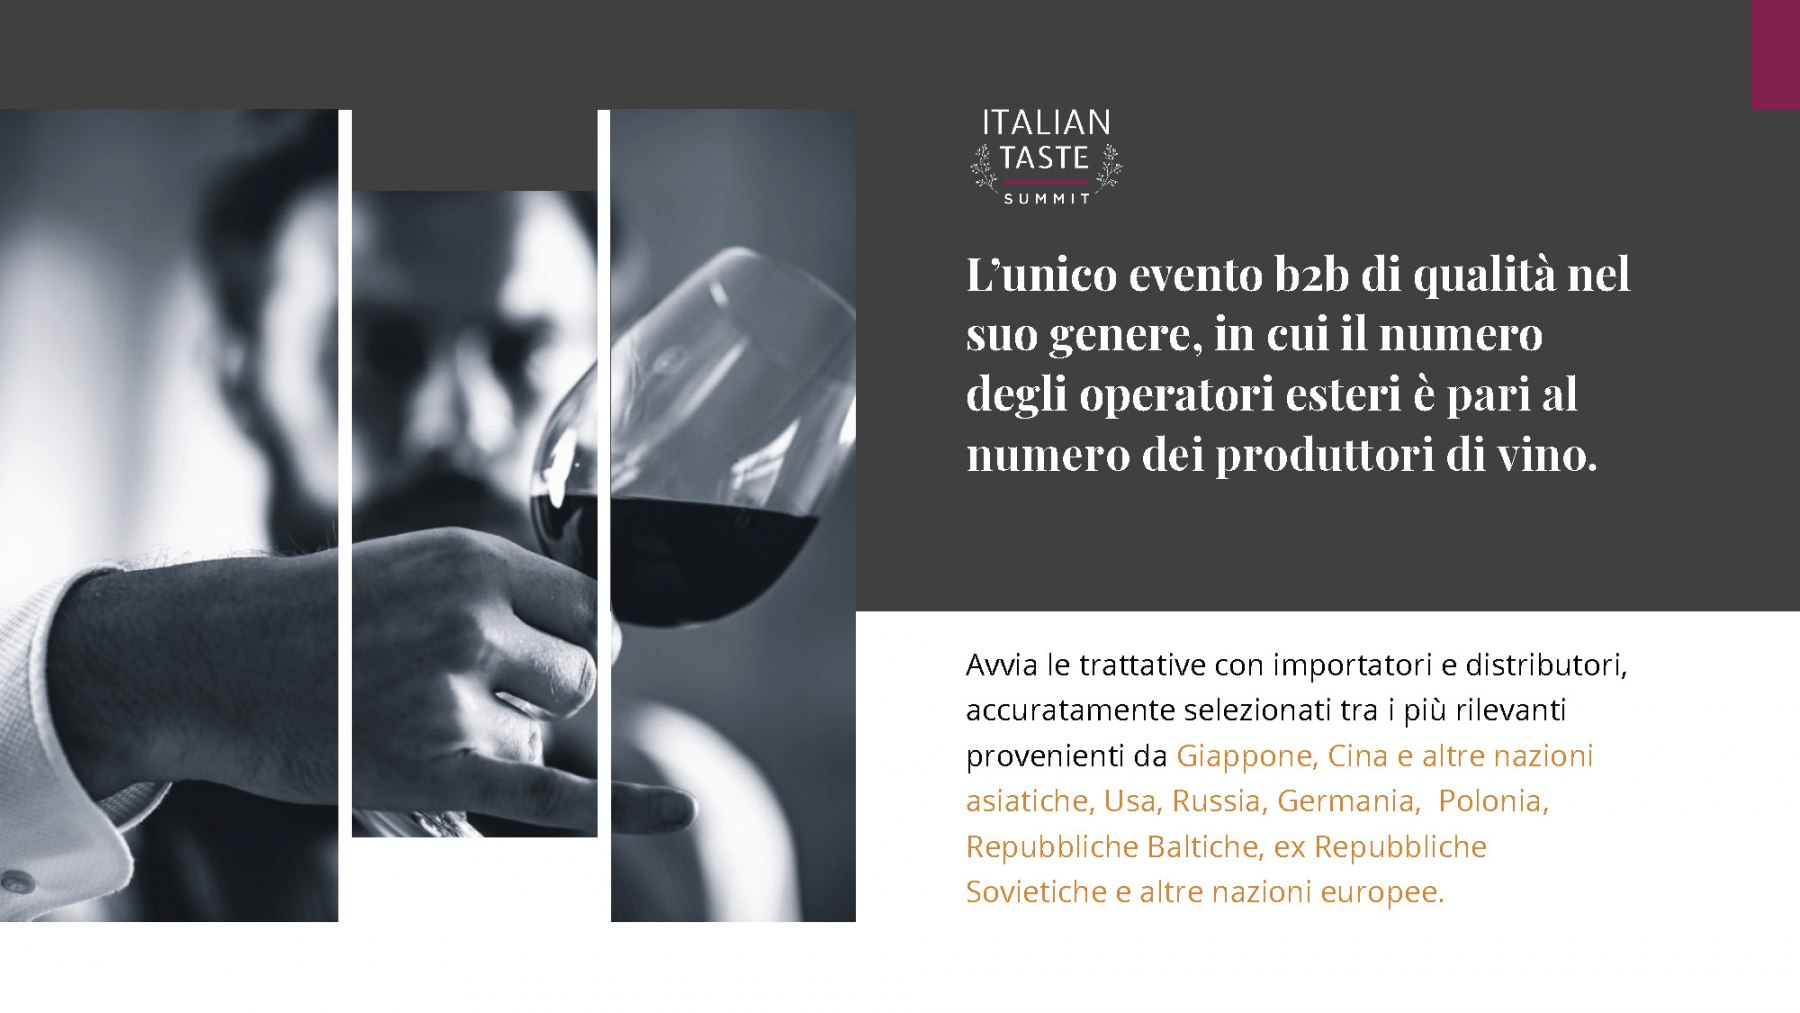 Italian-Taste-Summit-IT-2020_02